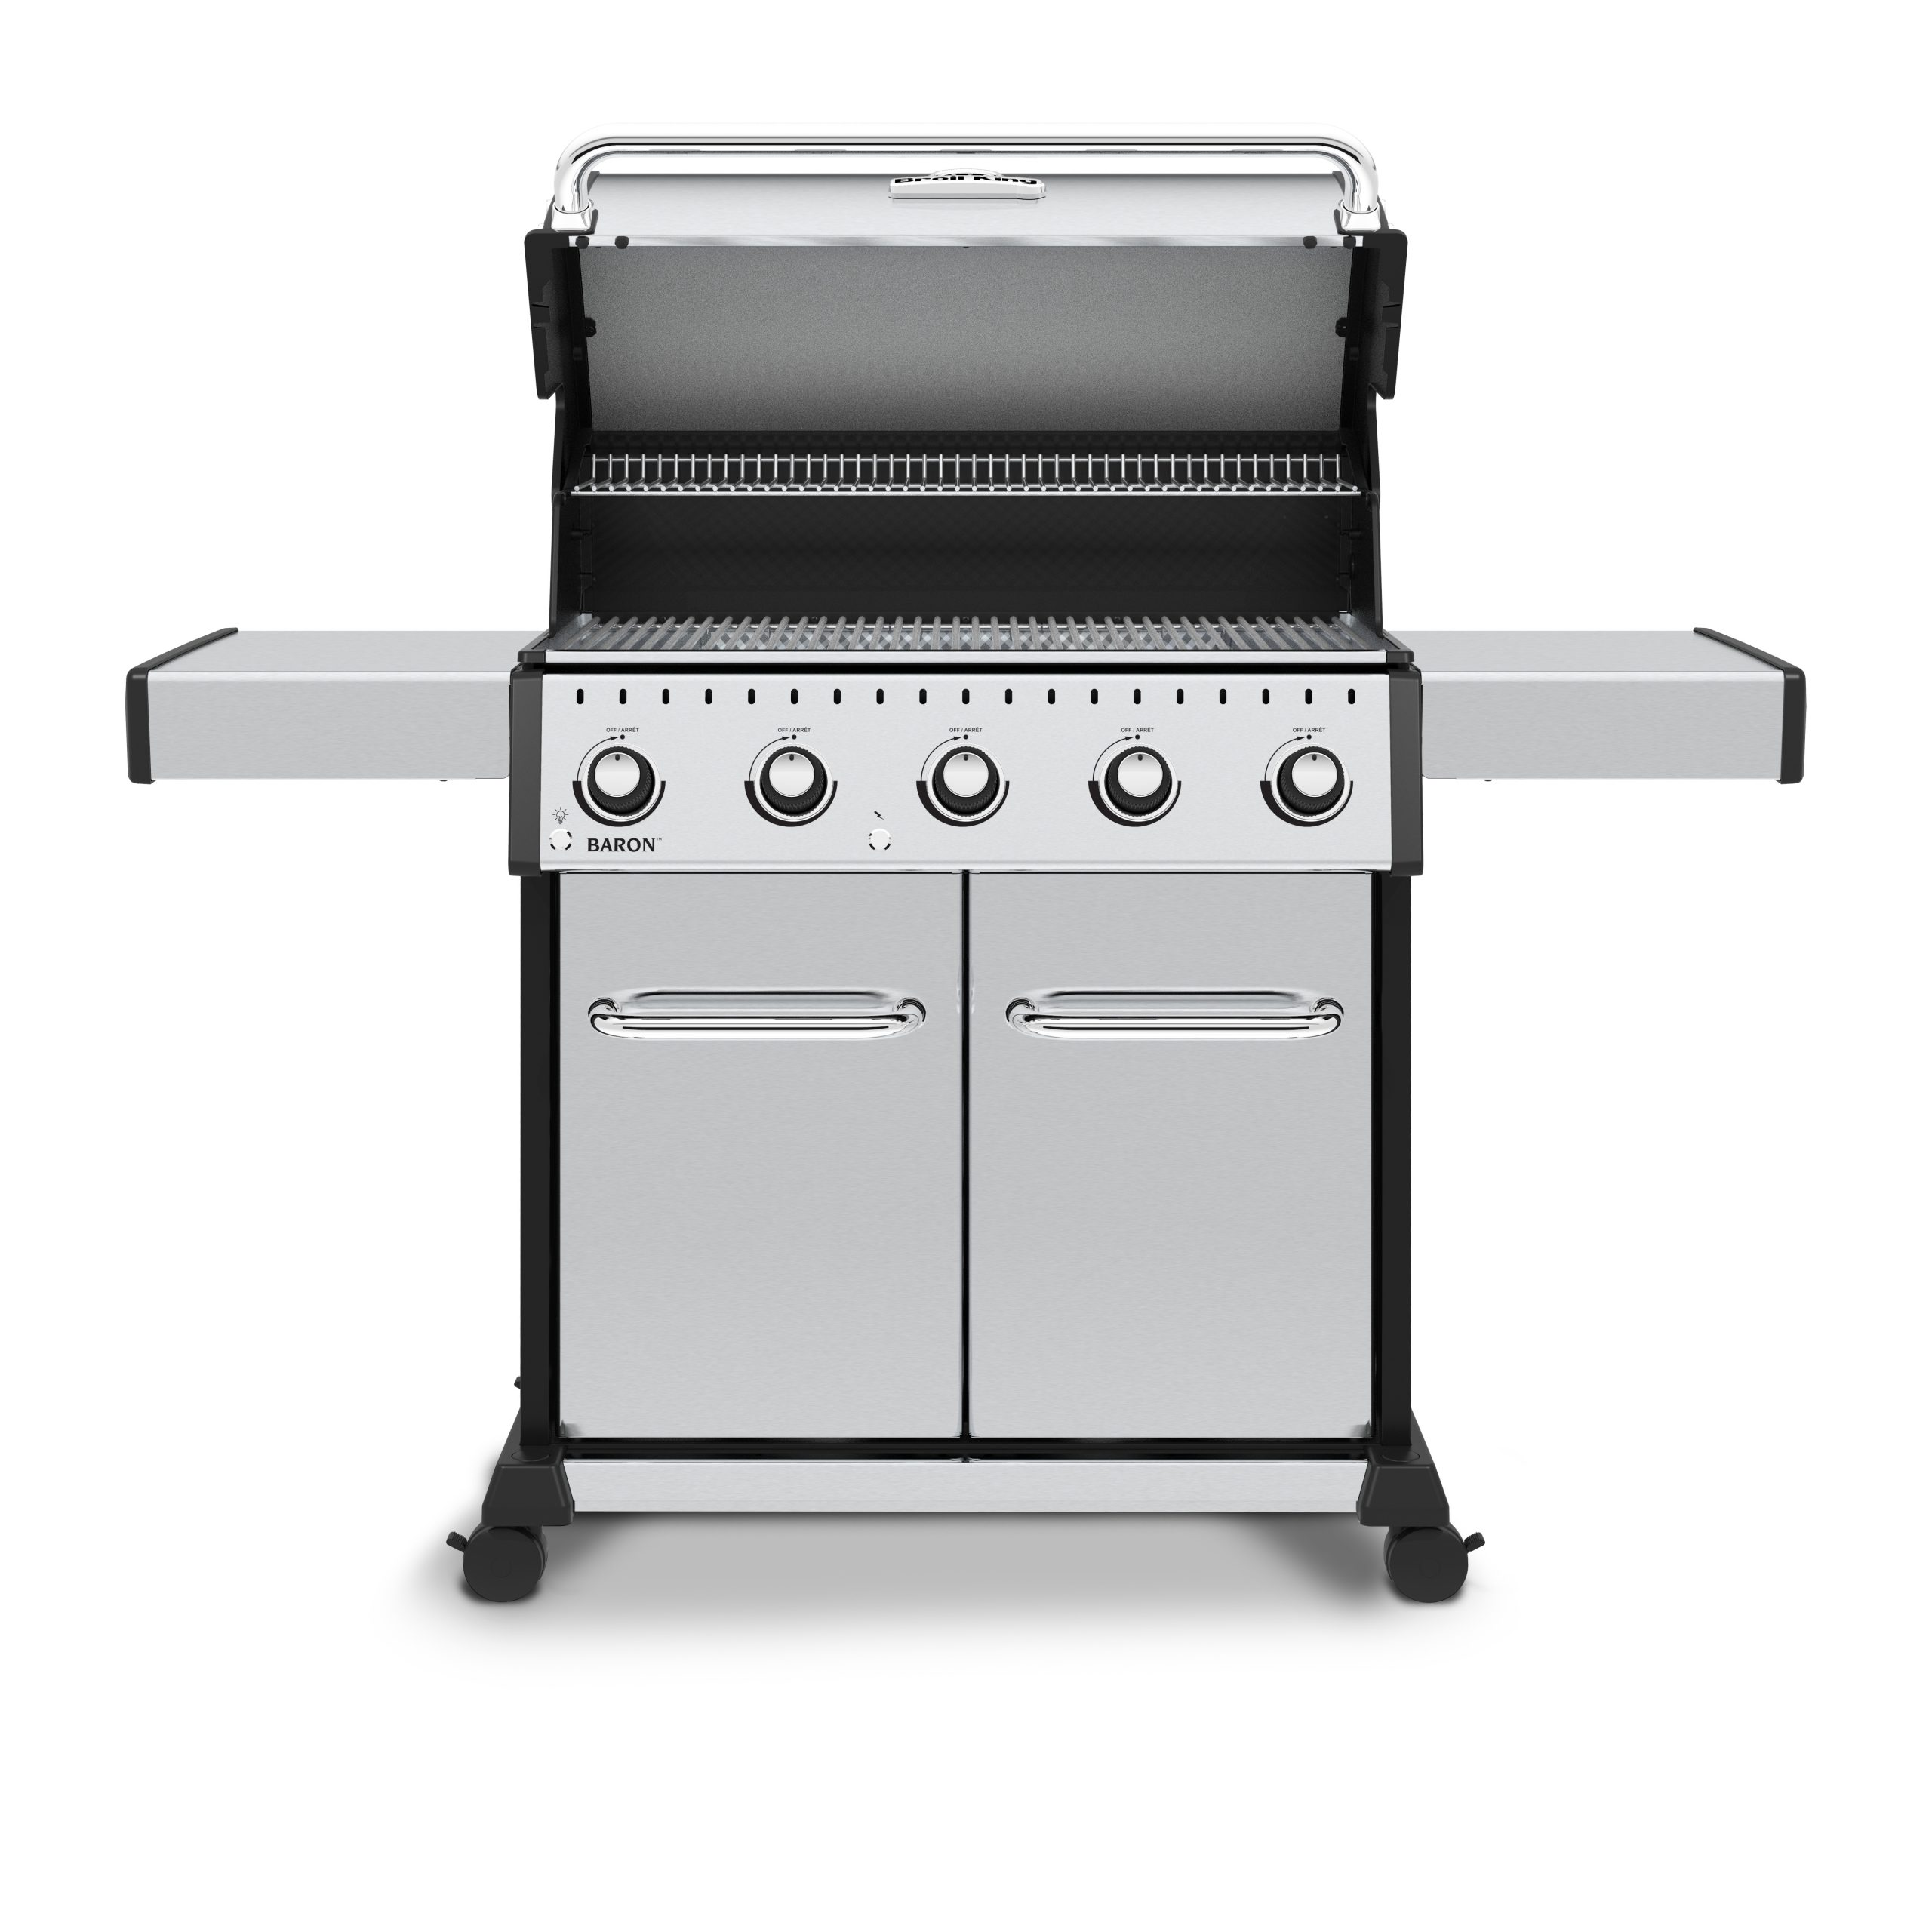 Broil King Baron S 520 Pro Front Facing